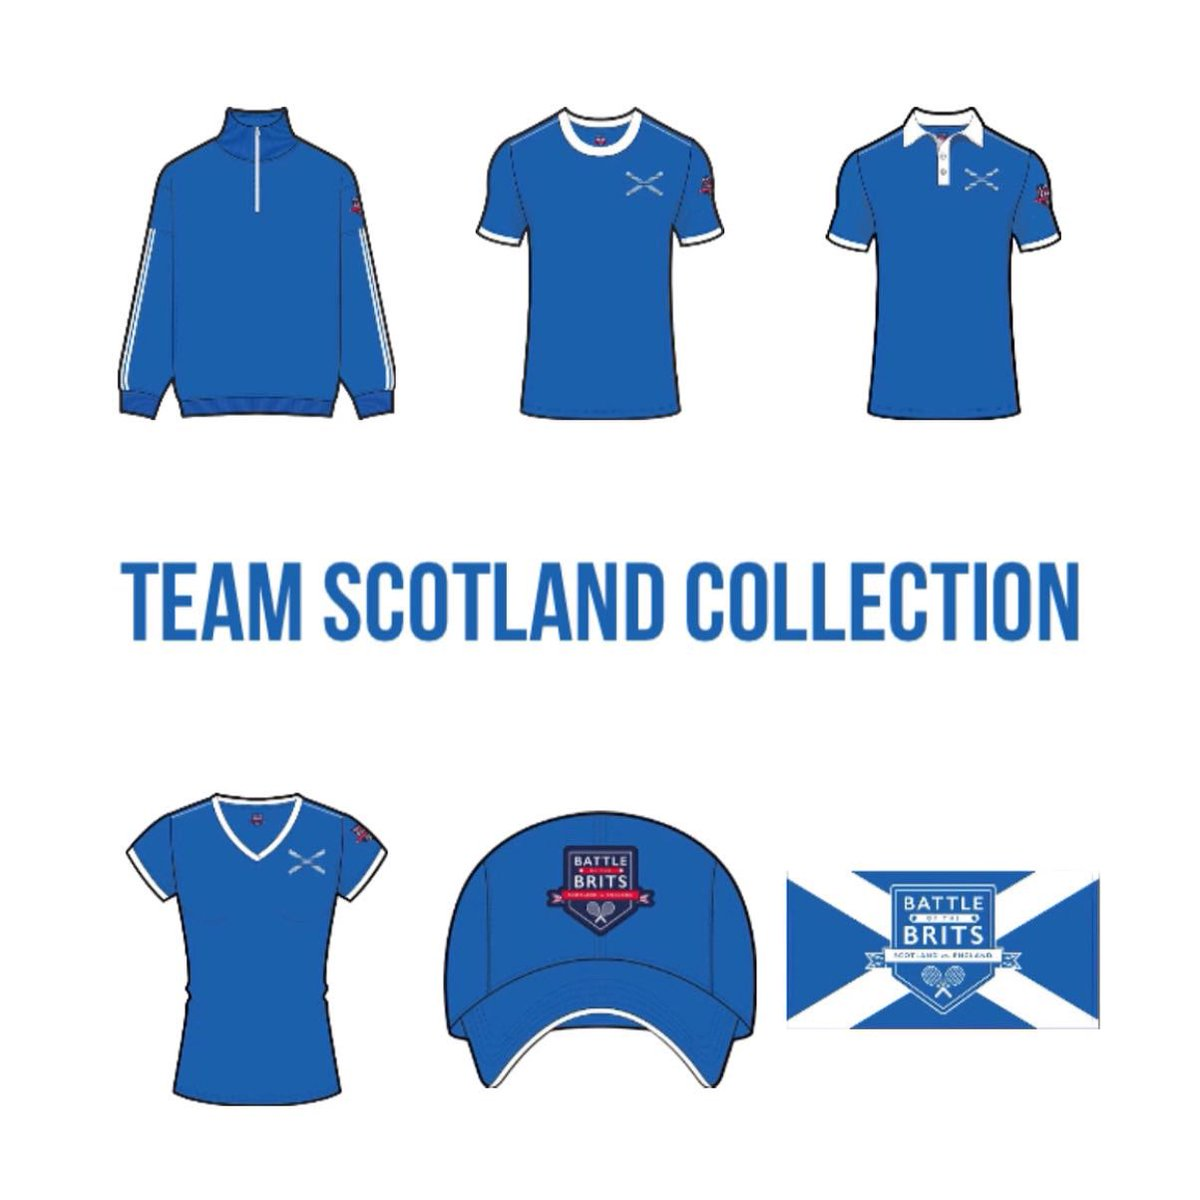 Just dropped our #battleofthebrits merch so you can wear the kit worn by the players, shop now! 🎾🧢🔗 battleofthebrits.co.uk/shop